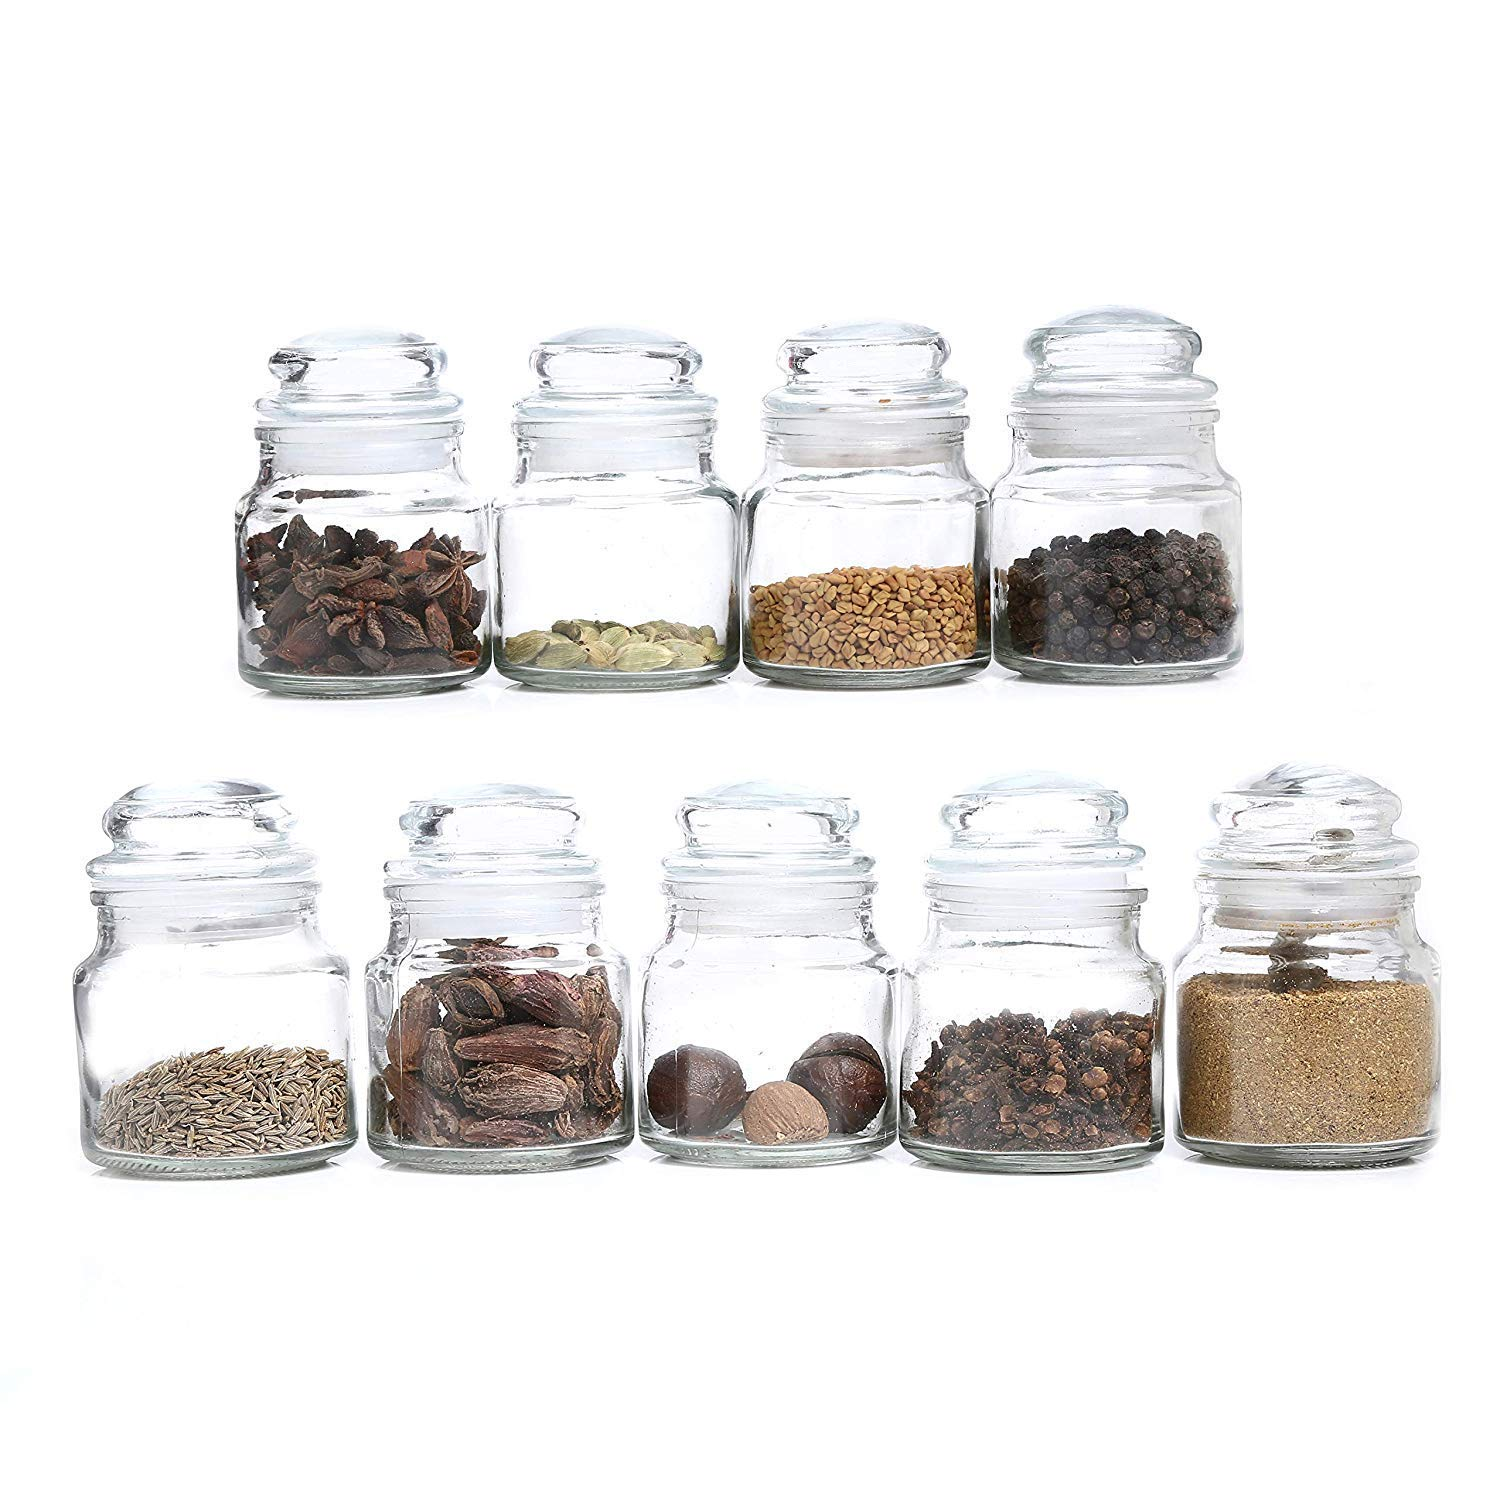 Buy DINEMART Glass Spice jar- 100 ml, 6 pieces, Transparent Online at Low  Prices in India - Amazon.in